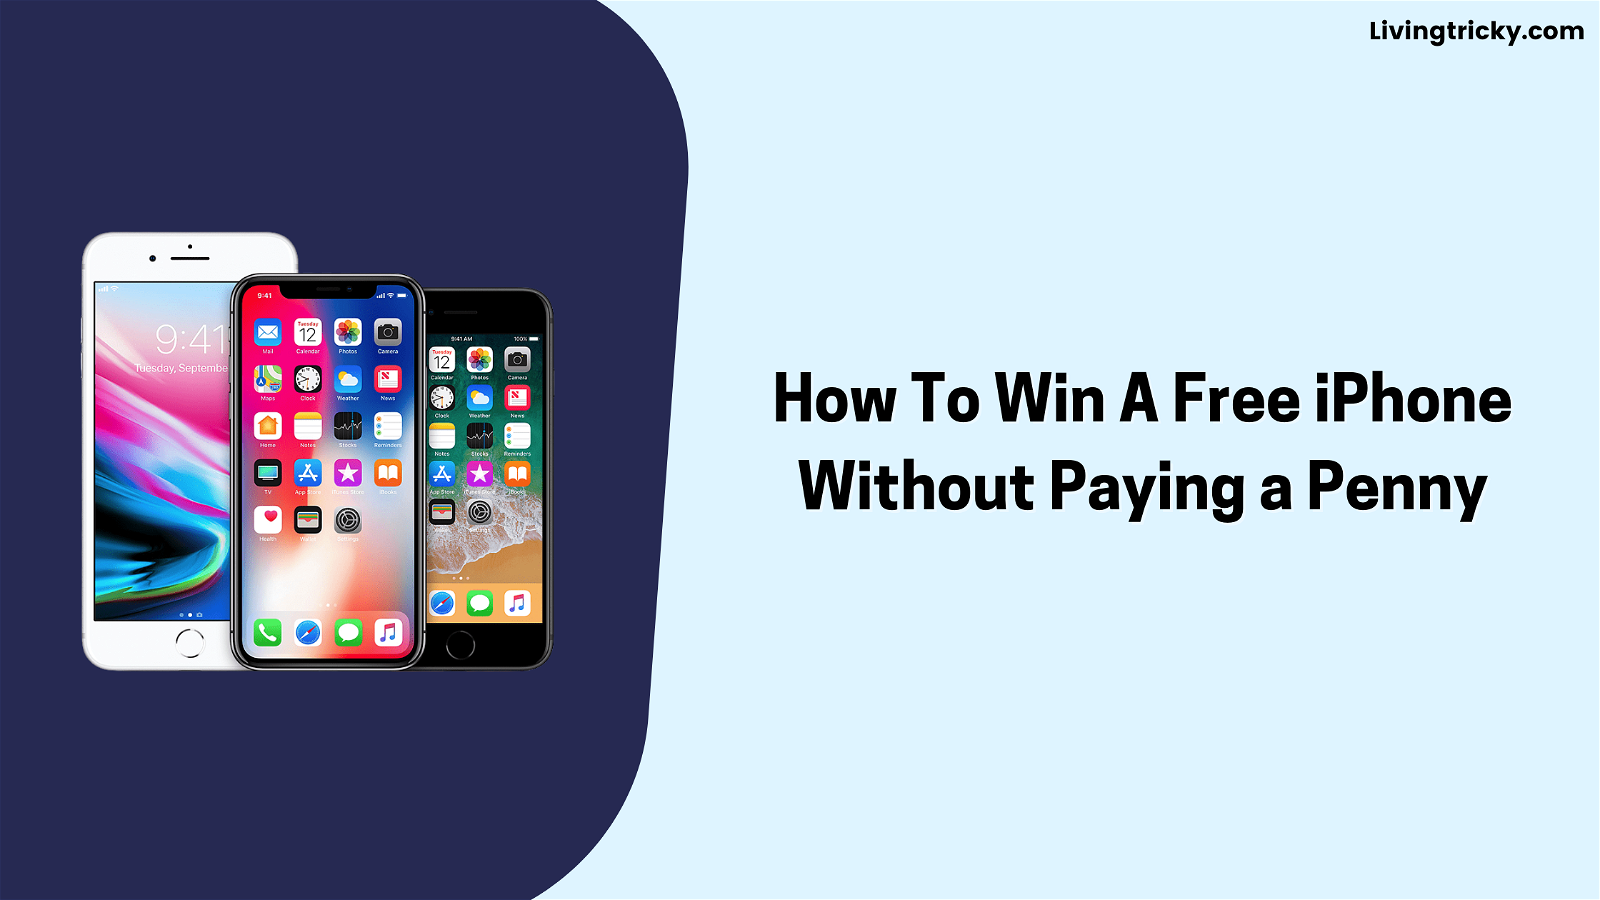 How To Win A Free iPhone Without Paying a Penny